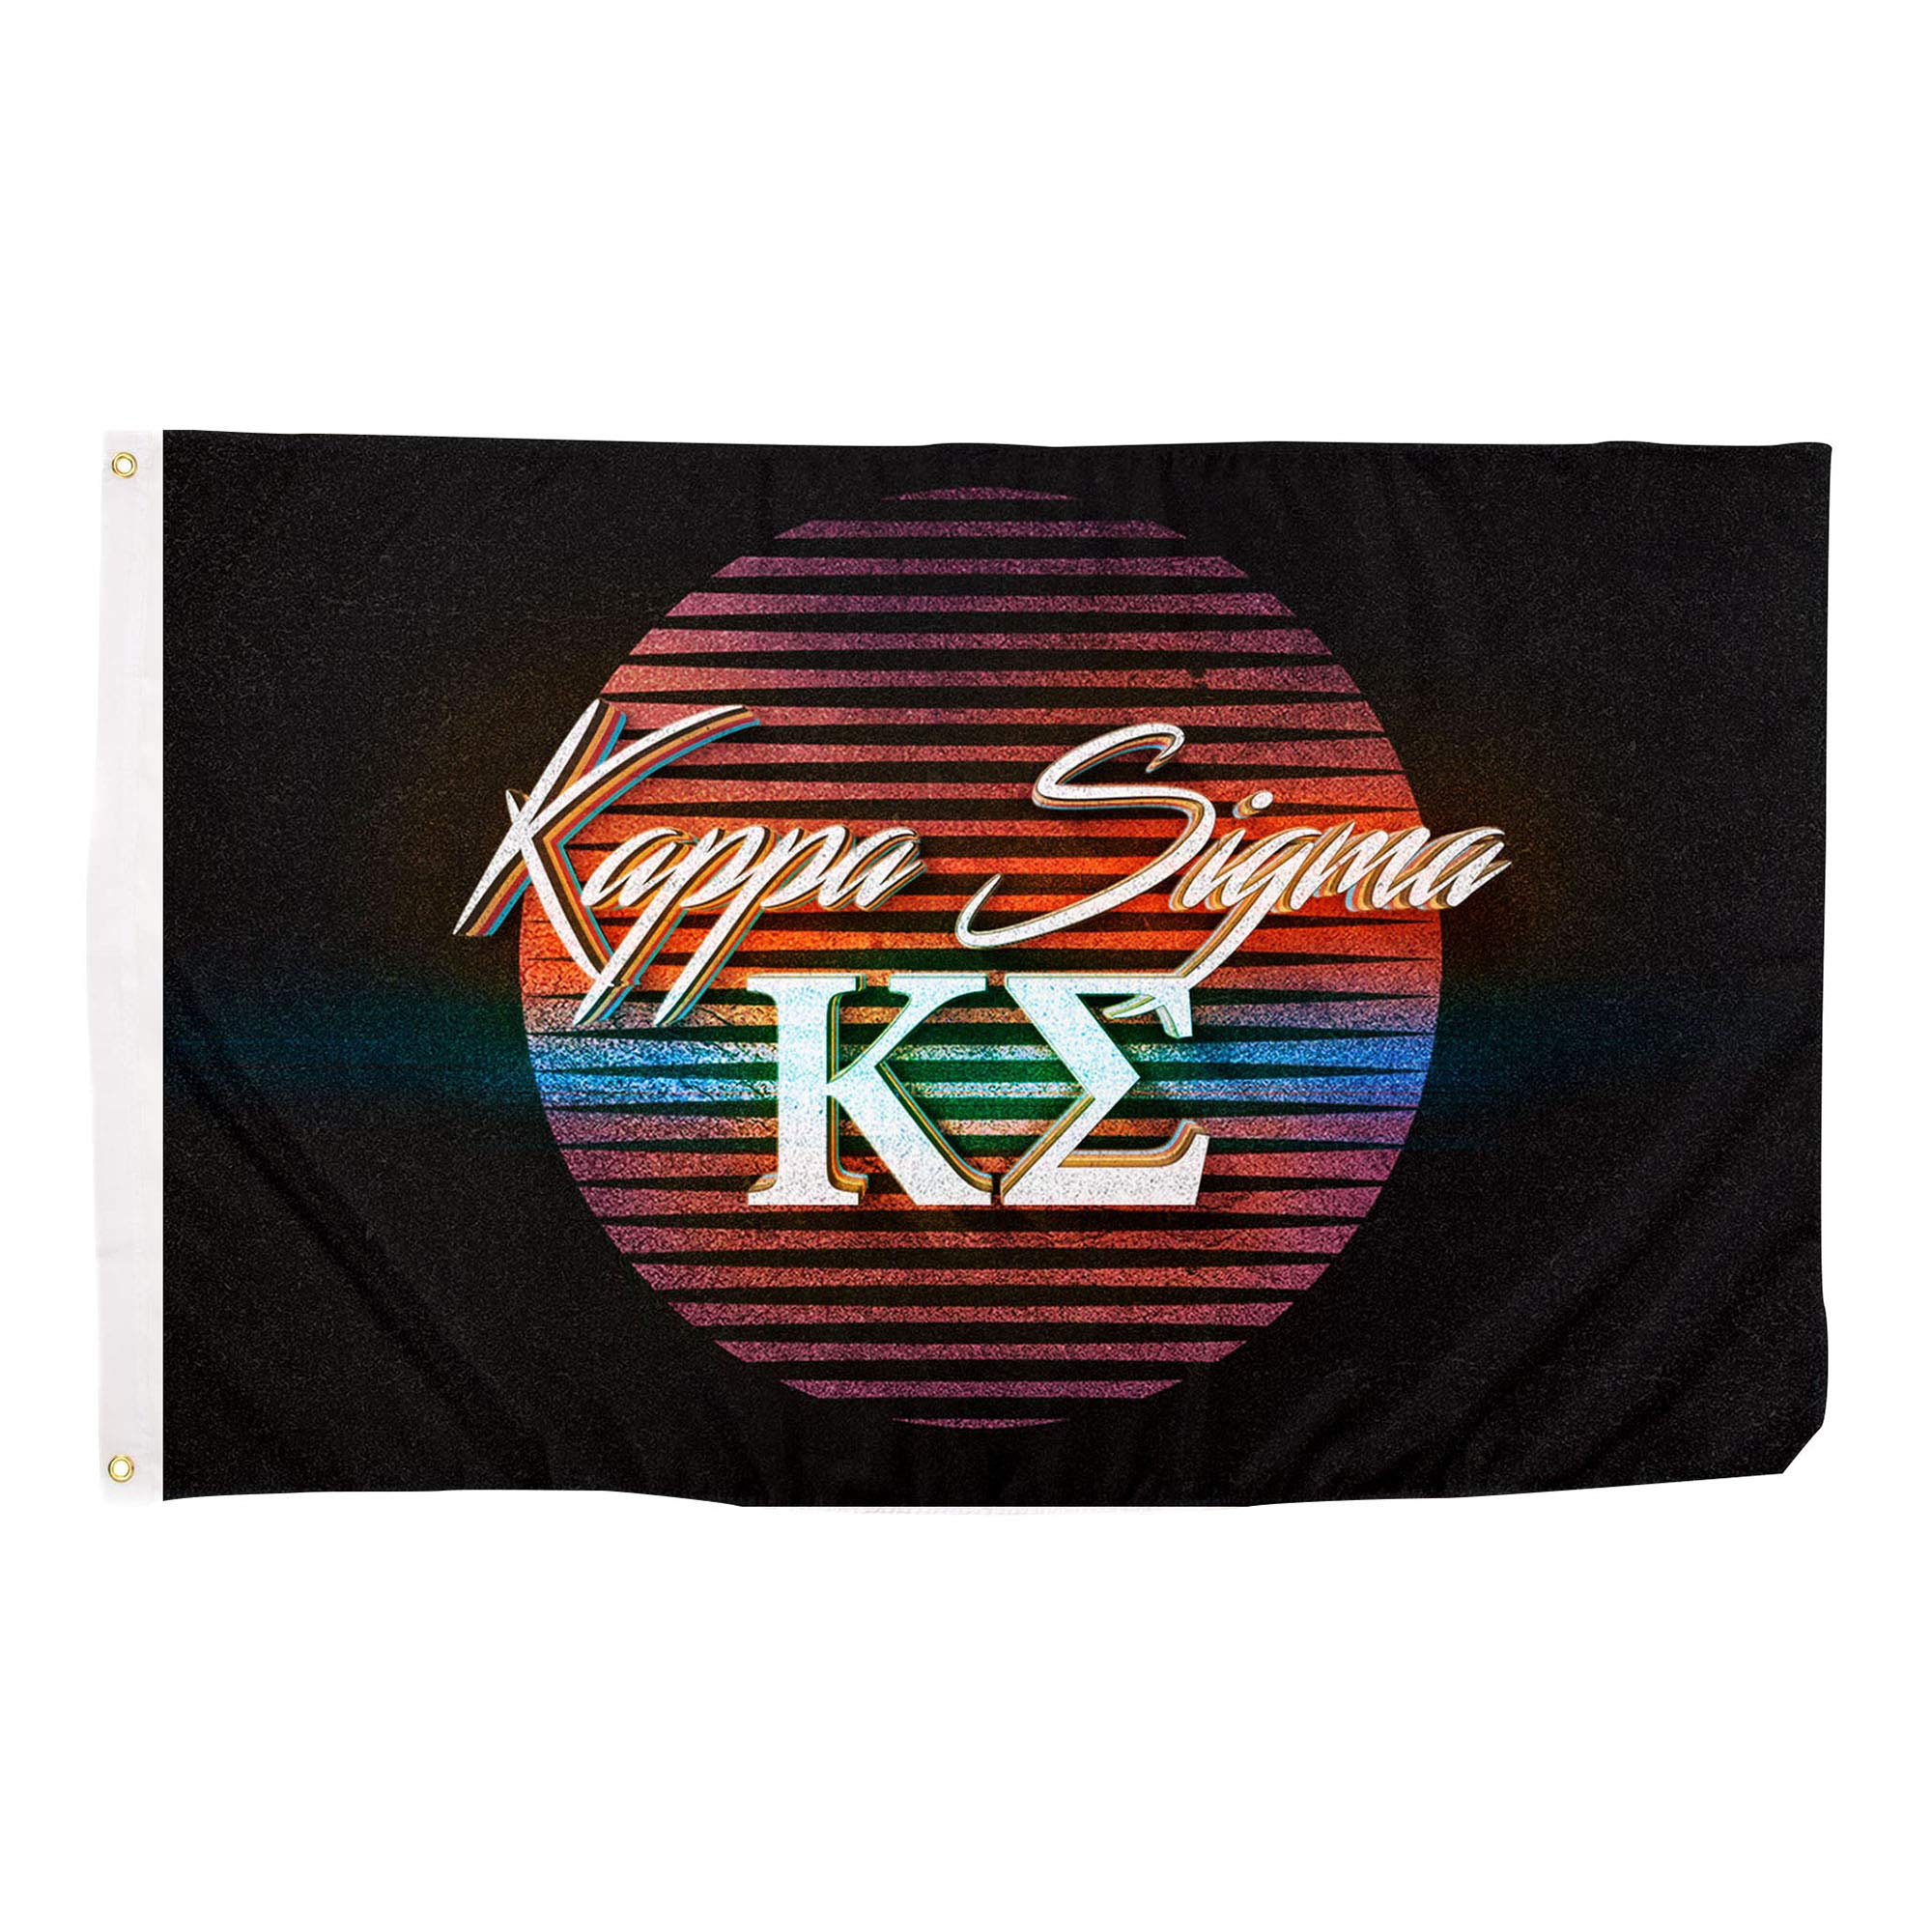 Kappa Sigma 80's Letter Fraternity Flag Banner 3 x 5 Feet Sign Decor Kappa Sig by Desert Cactus